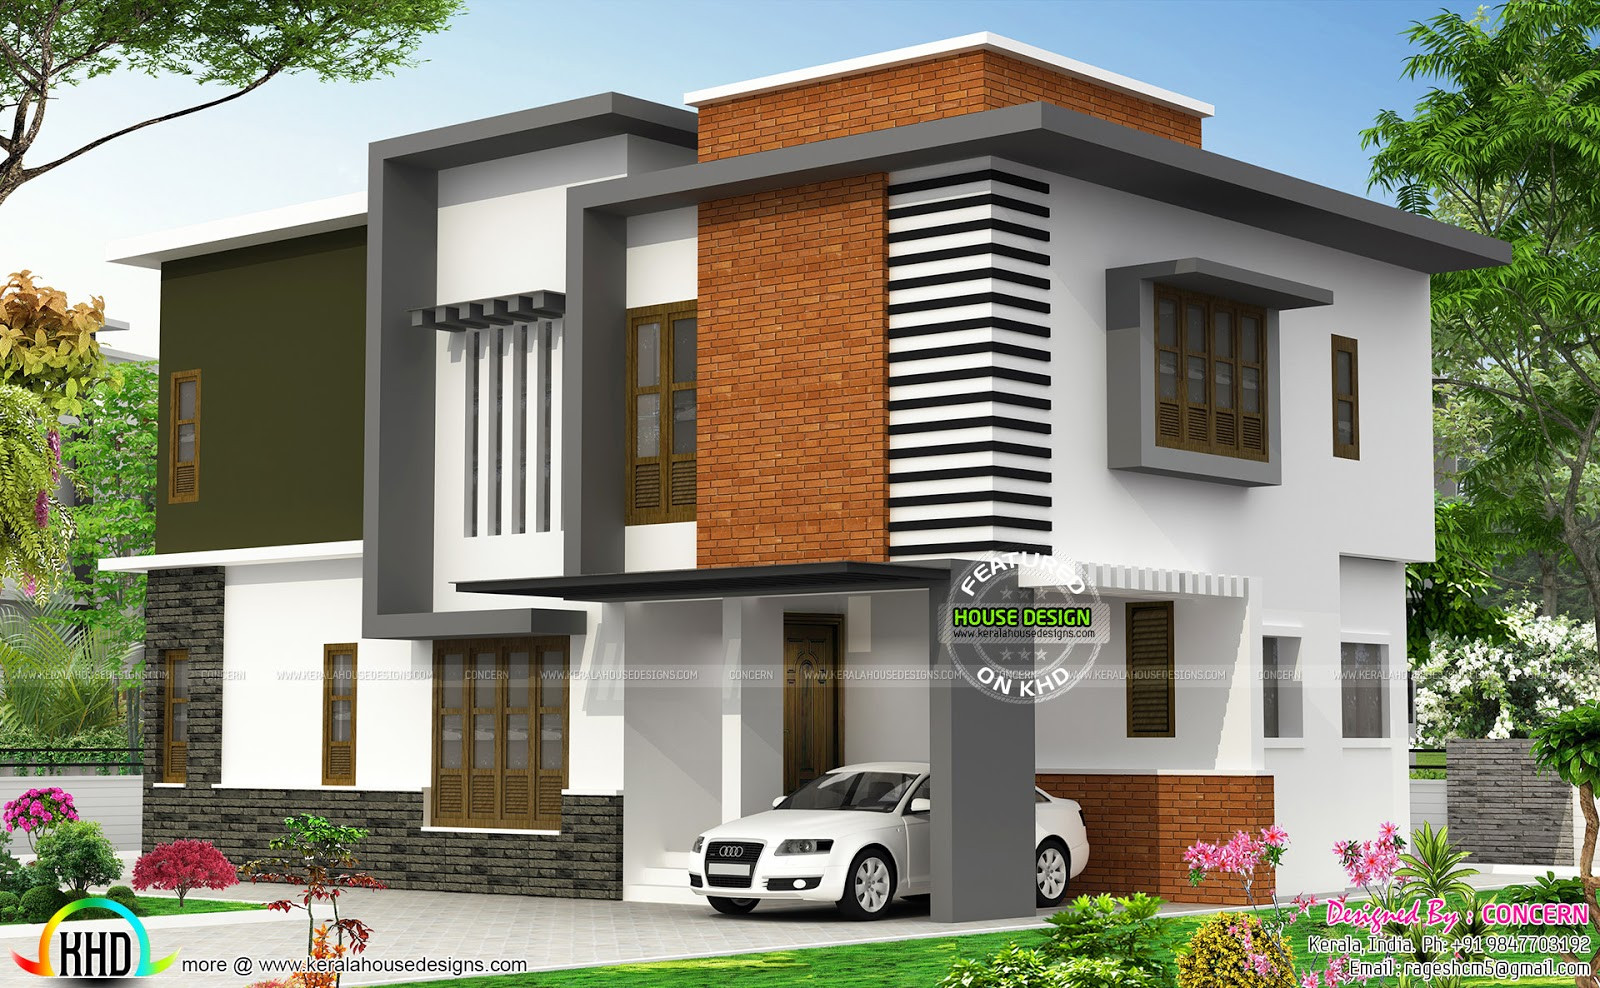 Illustrate Home Designs October 2015 Kerala Home Design and Floor Plans